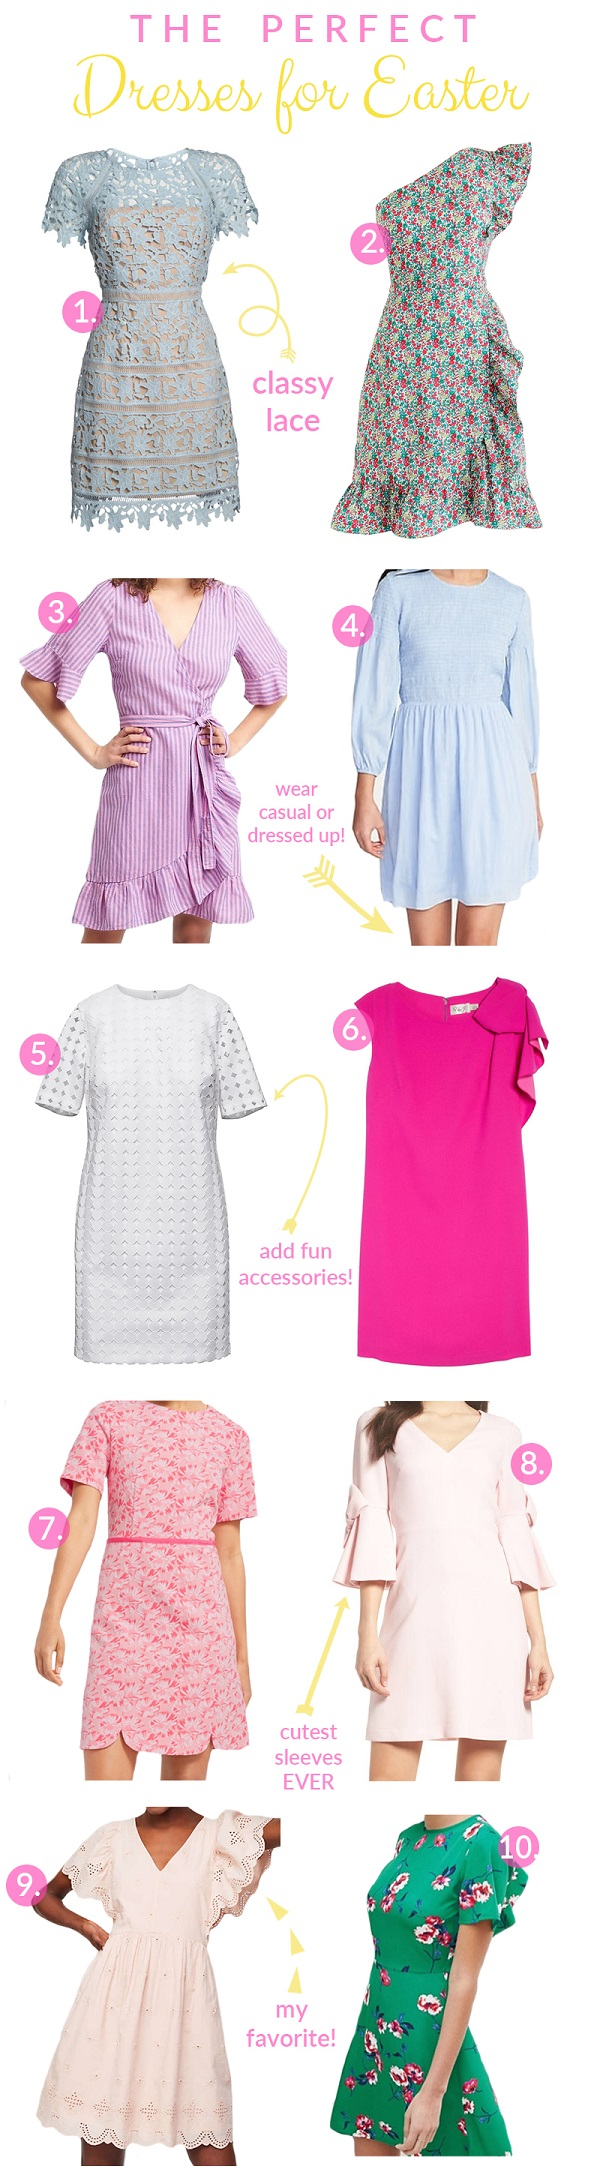 The Perfect Dresses for Easter by popular fashion blogger Walking in Memphis in High Heels